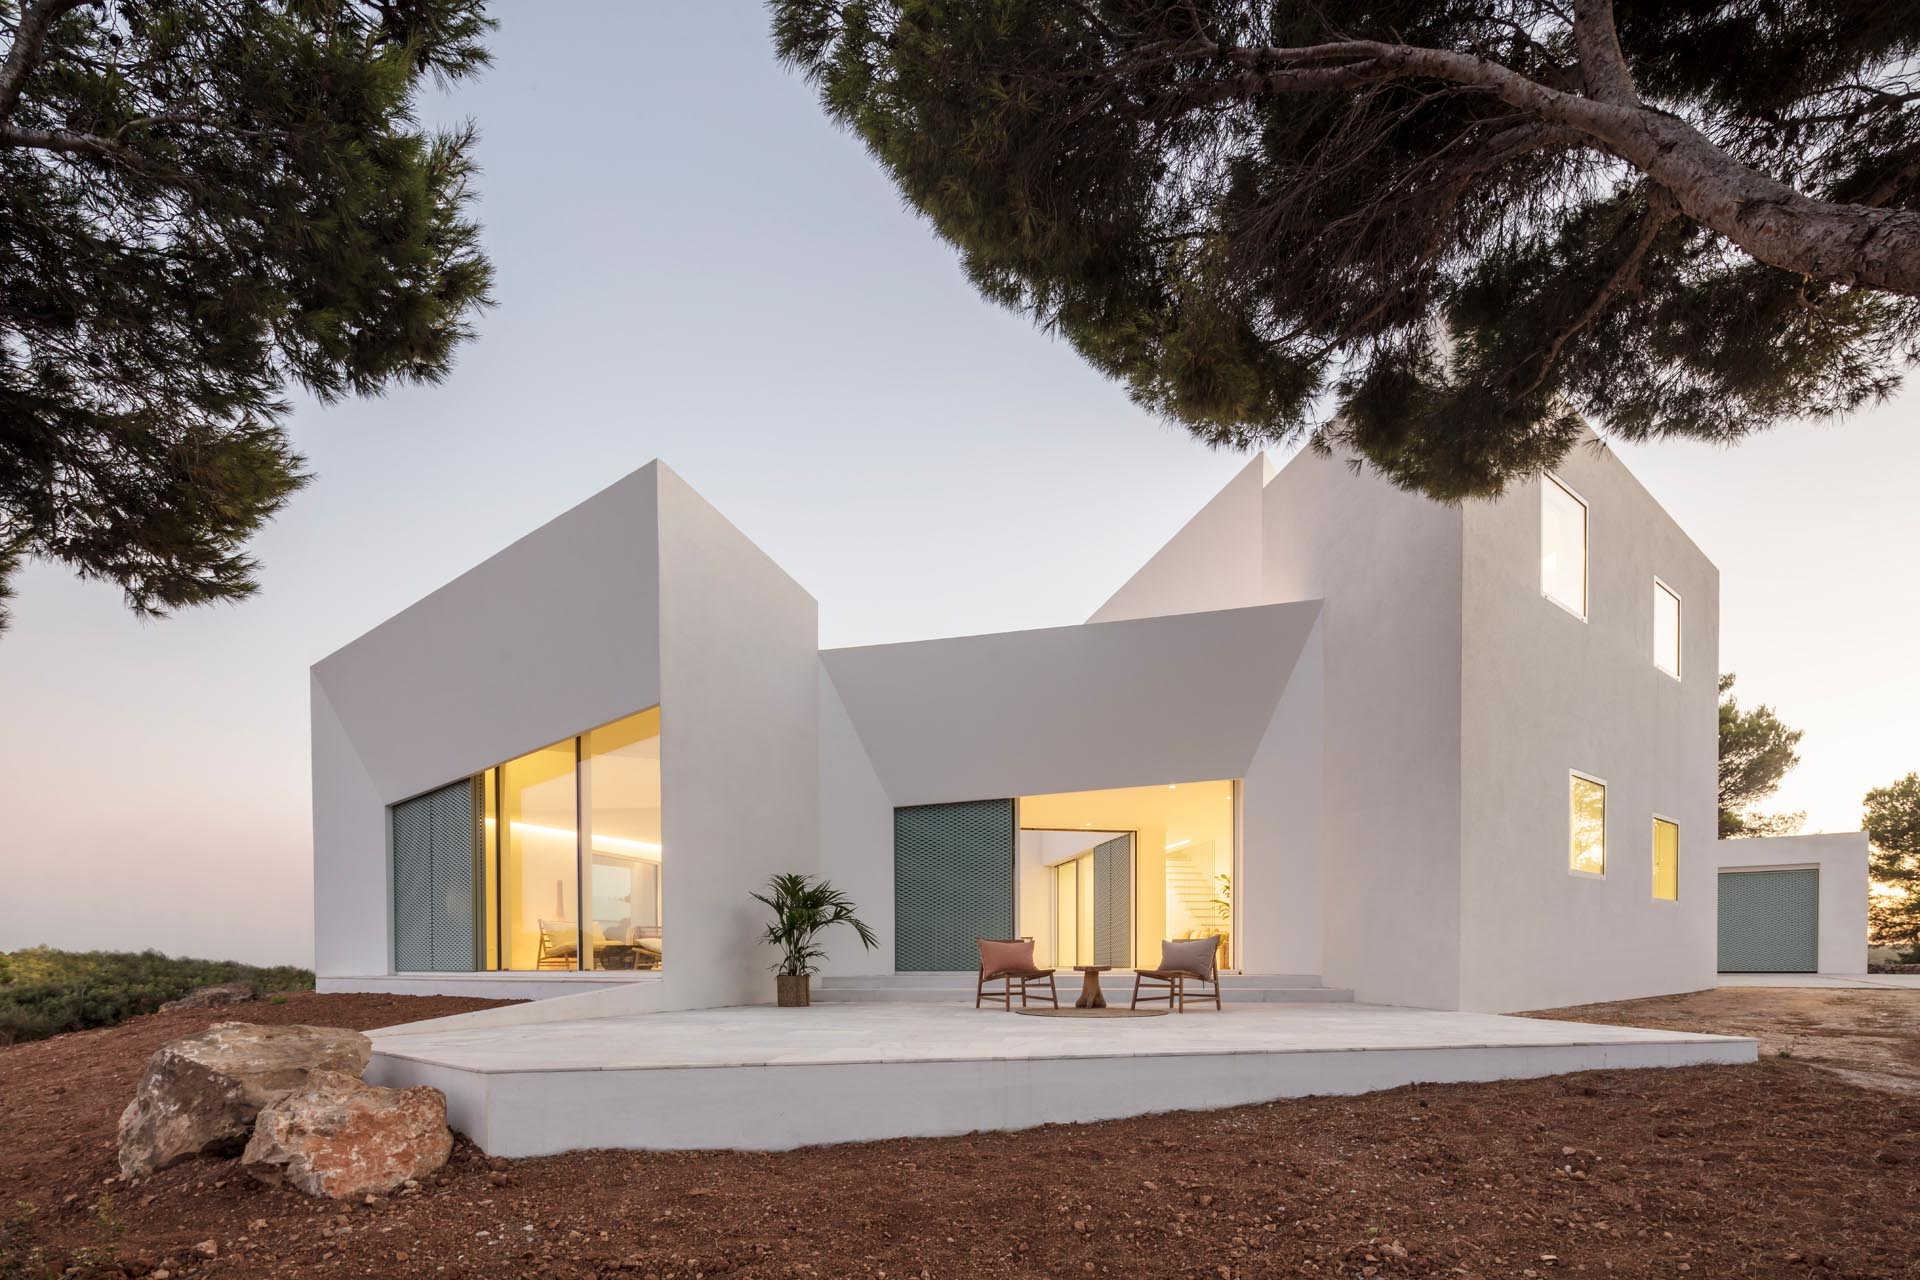 A modern white home with pastel turquoise perforated aluminum screens and an angular design.